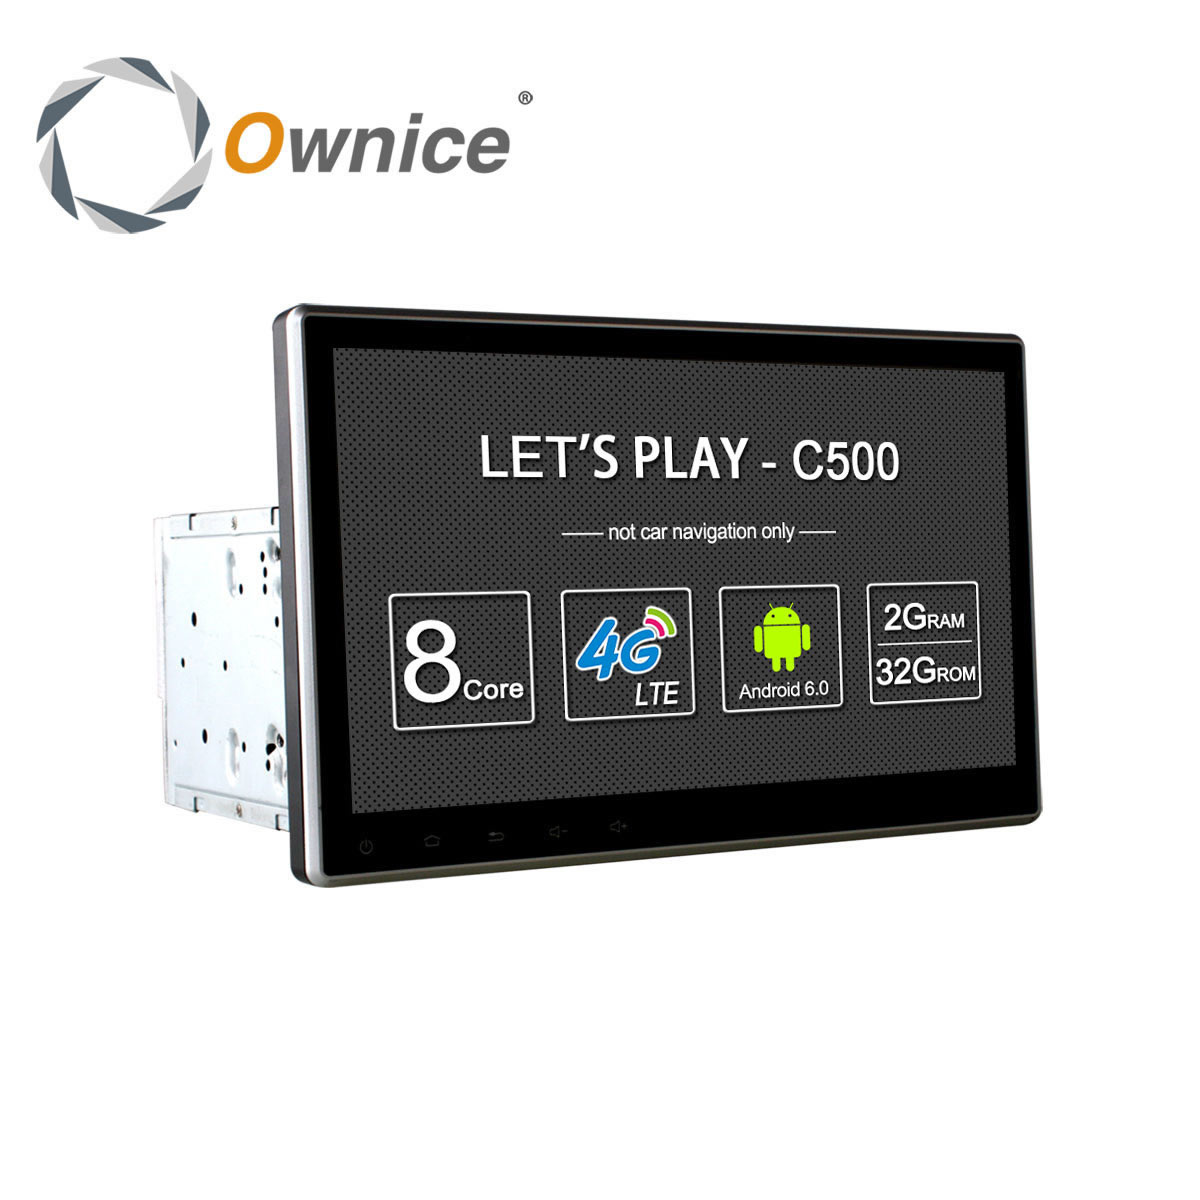 Ownice C500 10.1 Universal 2 din Car dvd radio Player Navigation GPS Android 6.0 Octa Core 4G LTE 2GB+32GB DAB+ TPMS Carplay ownice c500 ol 7001f 7 0 inch car navigator dvd player